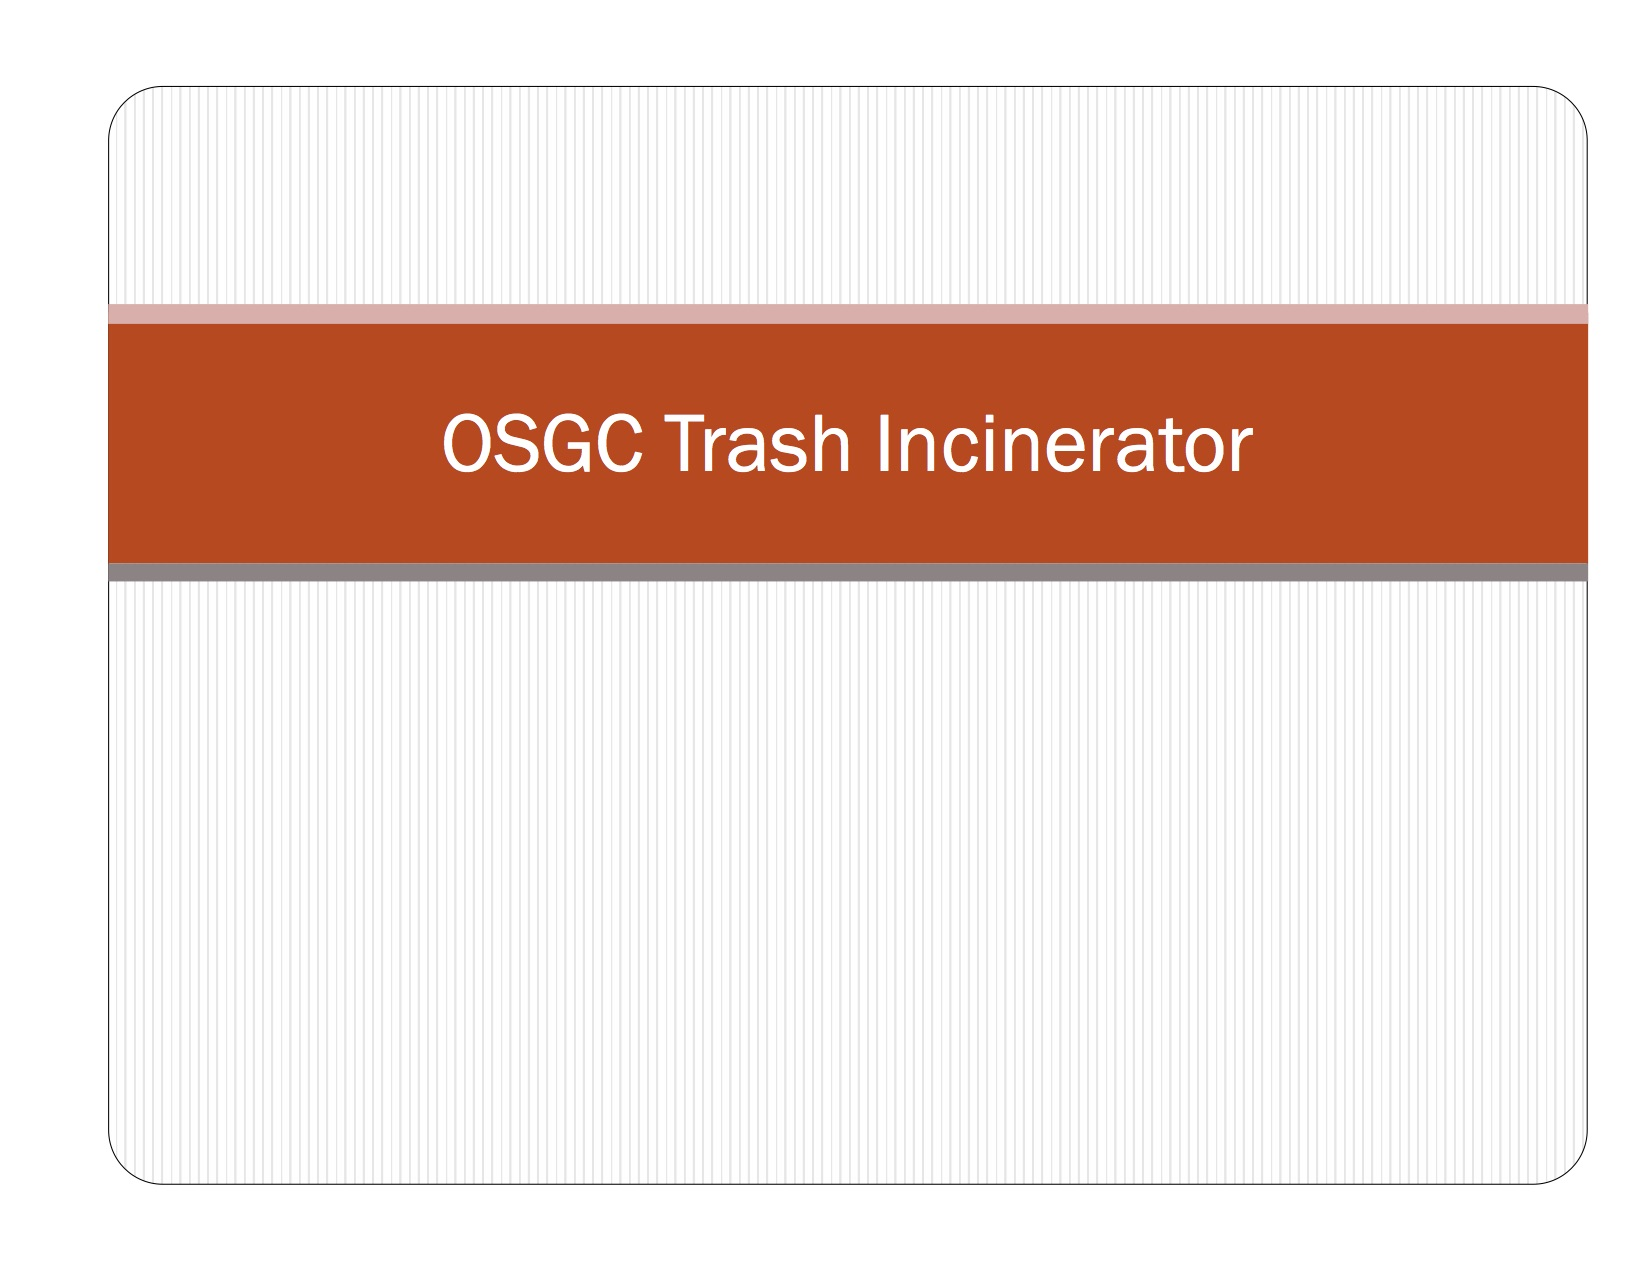 2012-04-18 IFBC re OSGC Trash Incinerator 1